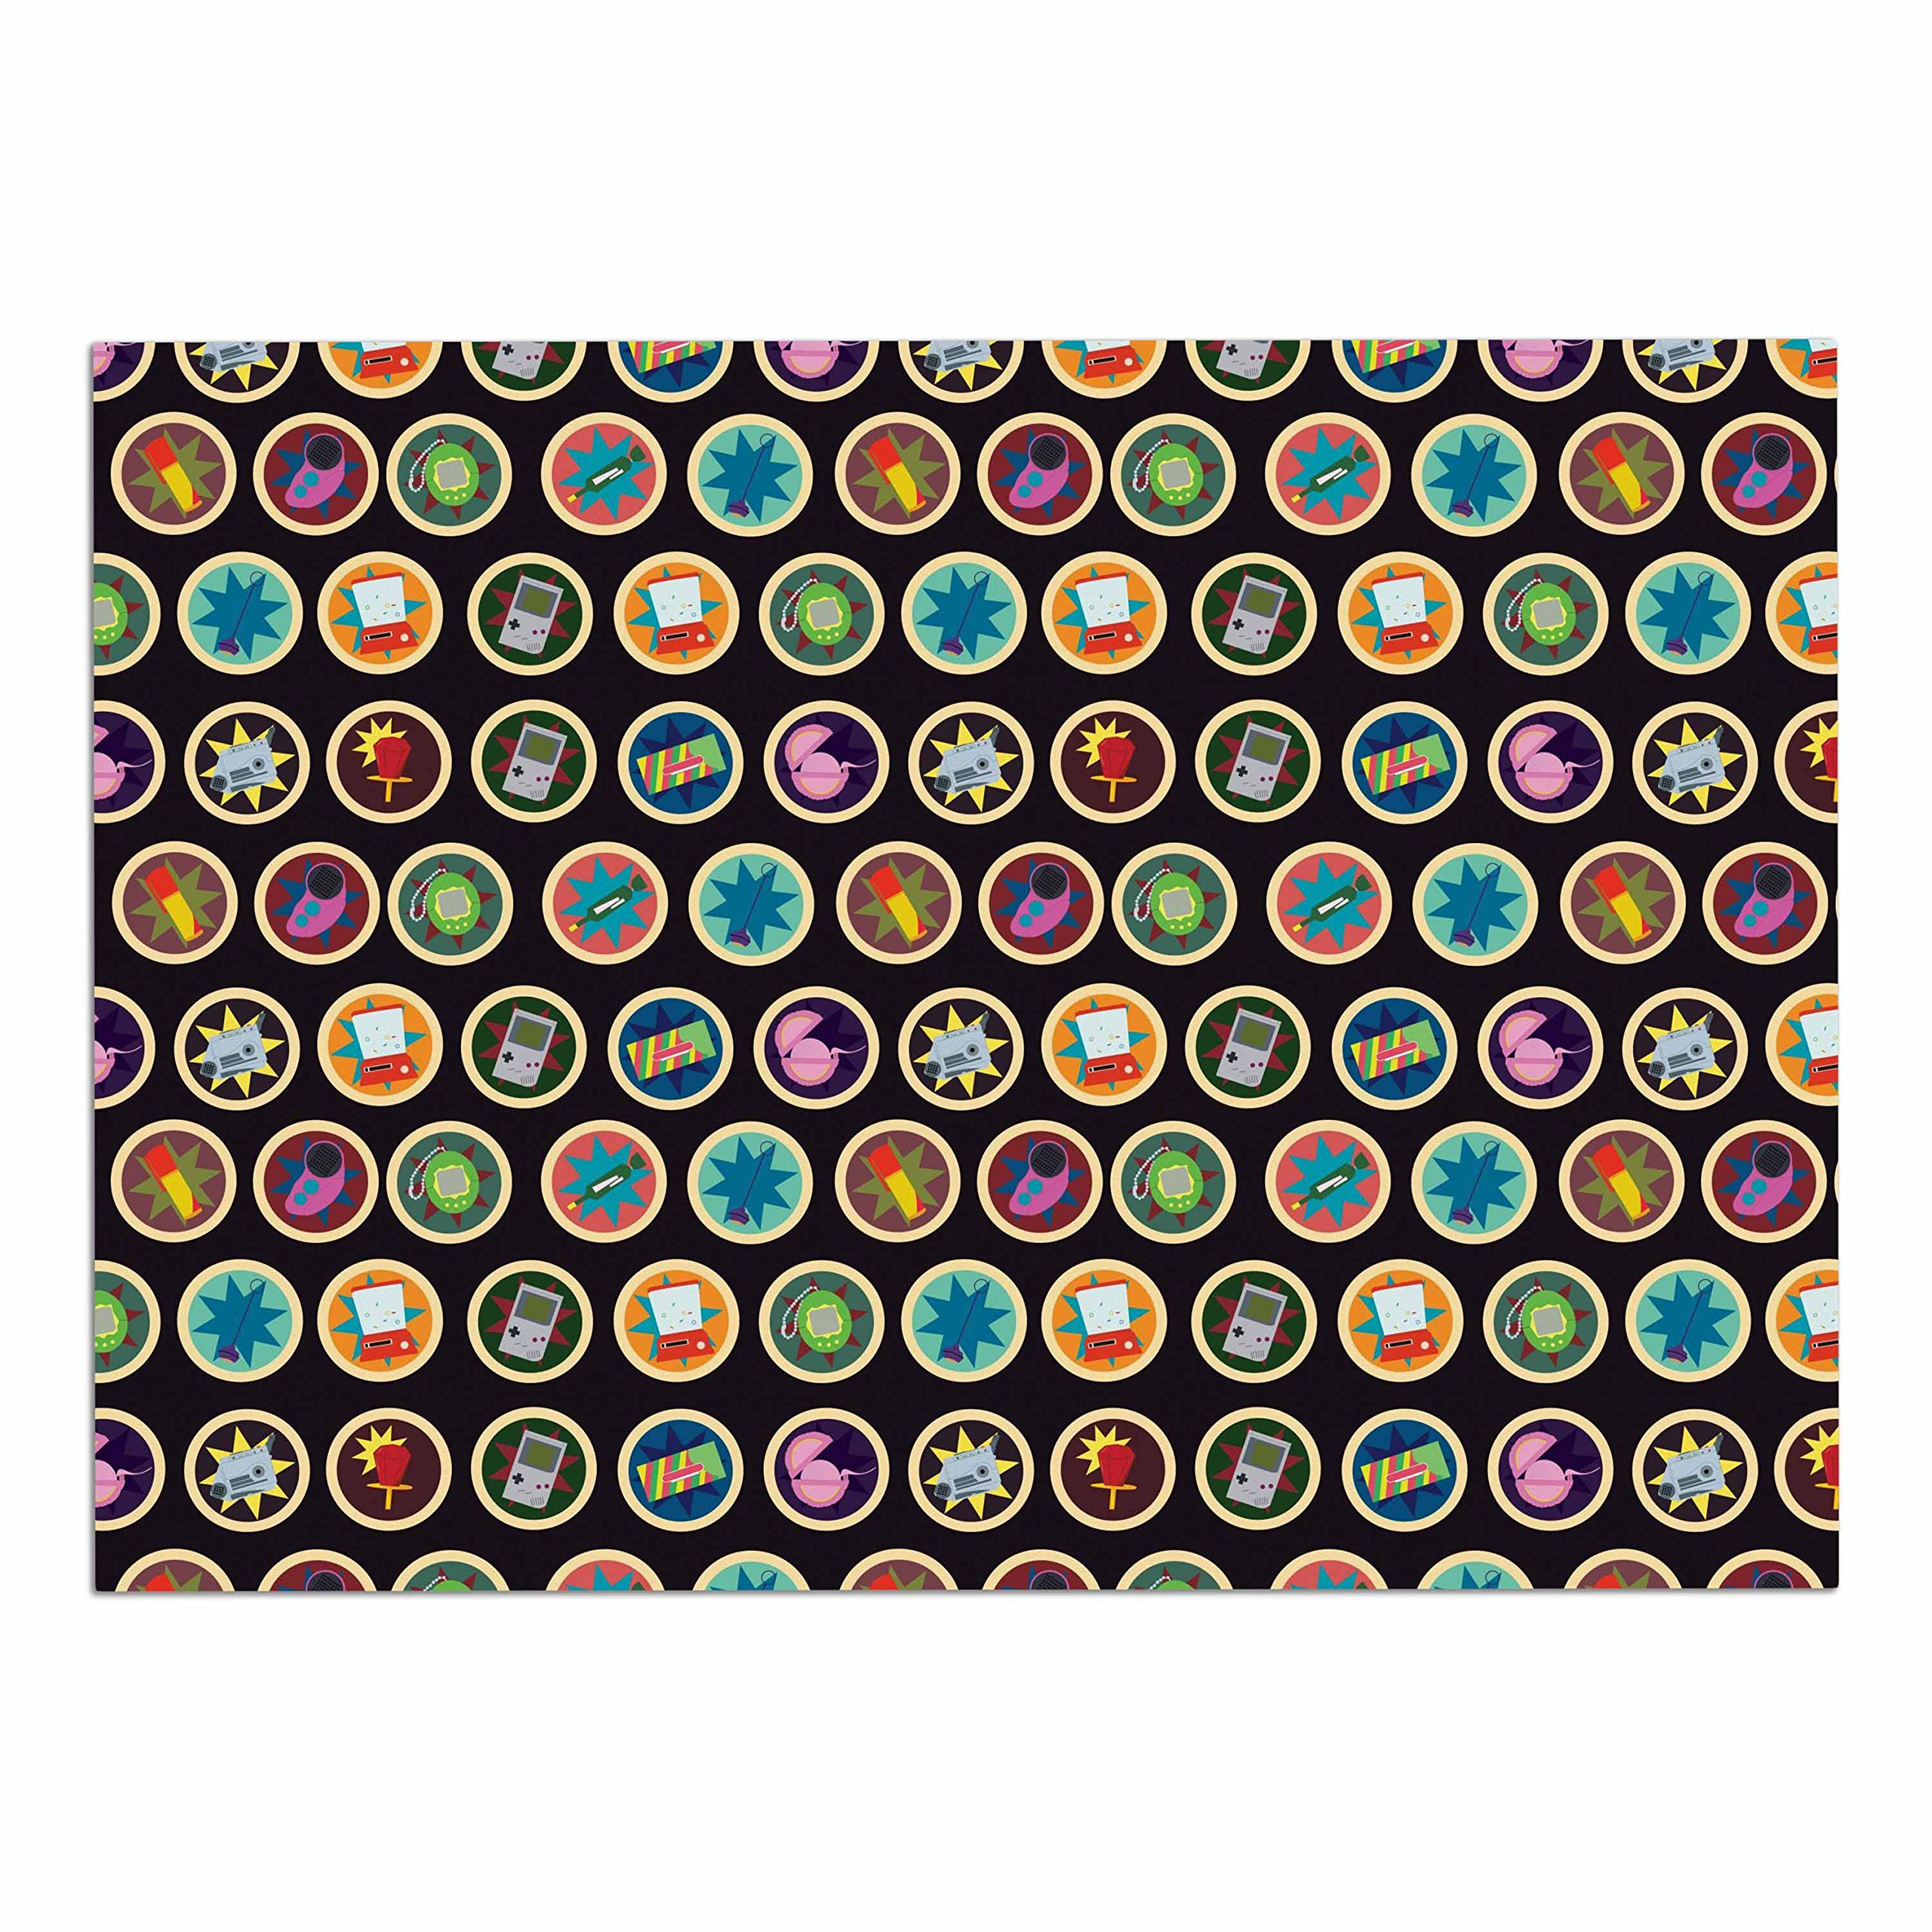 KESS InHouse SV1006ADM02 Stephanie Vaeth ''Toys, Games & Candy'' Multicolor Pattern Dog Place Mat, 24'' x 15'' by Kess InHouse (Image #1)